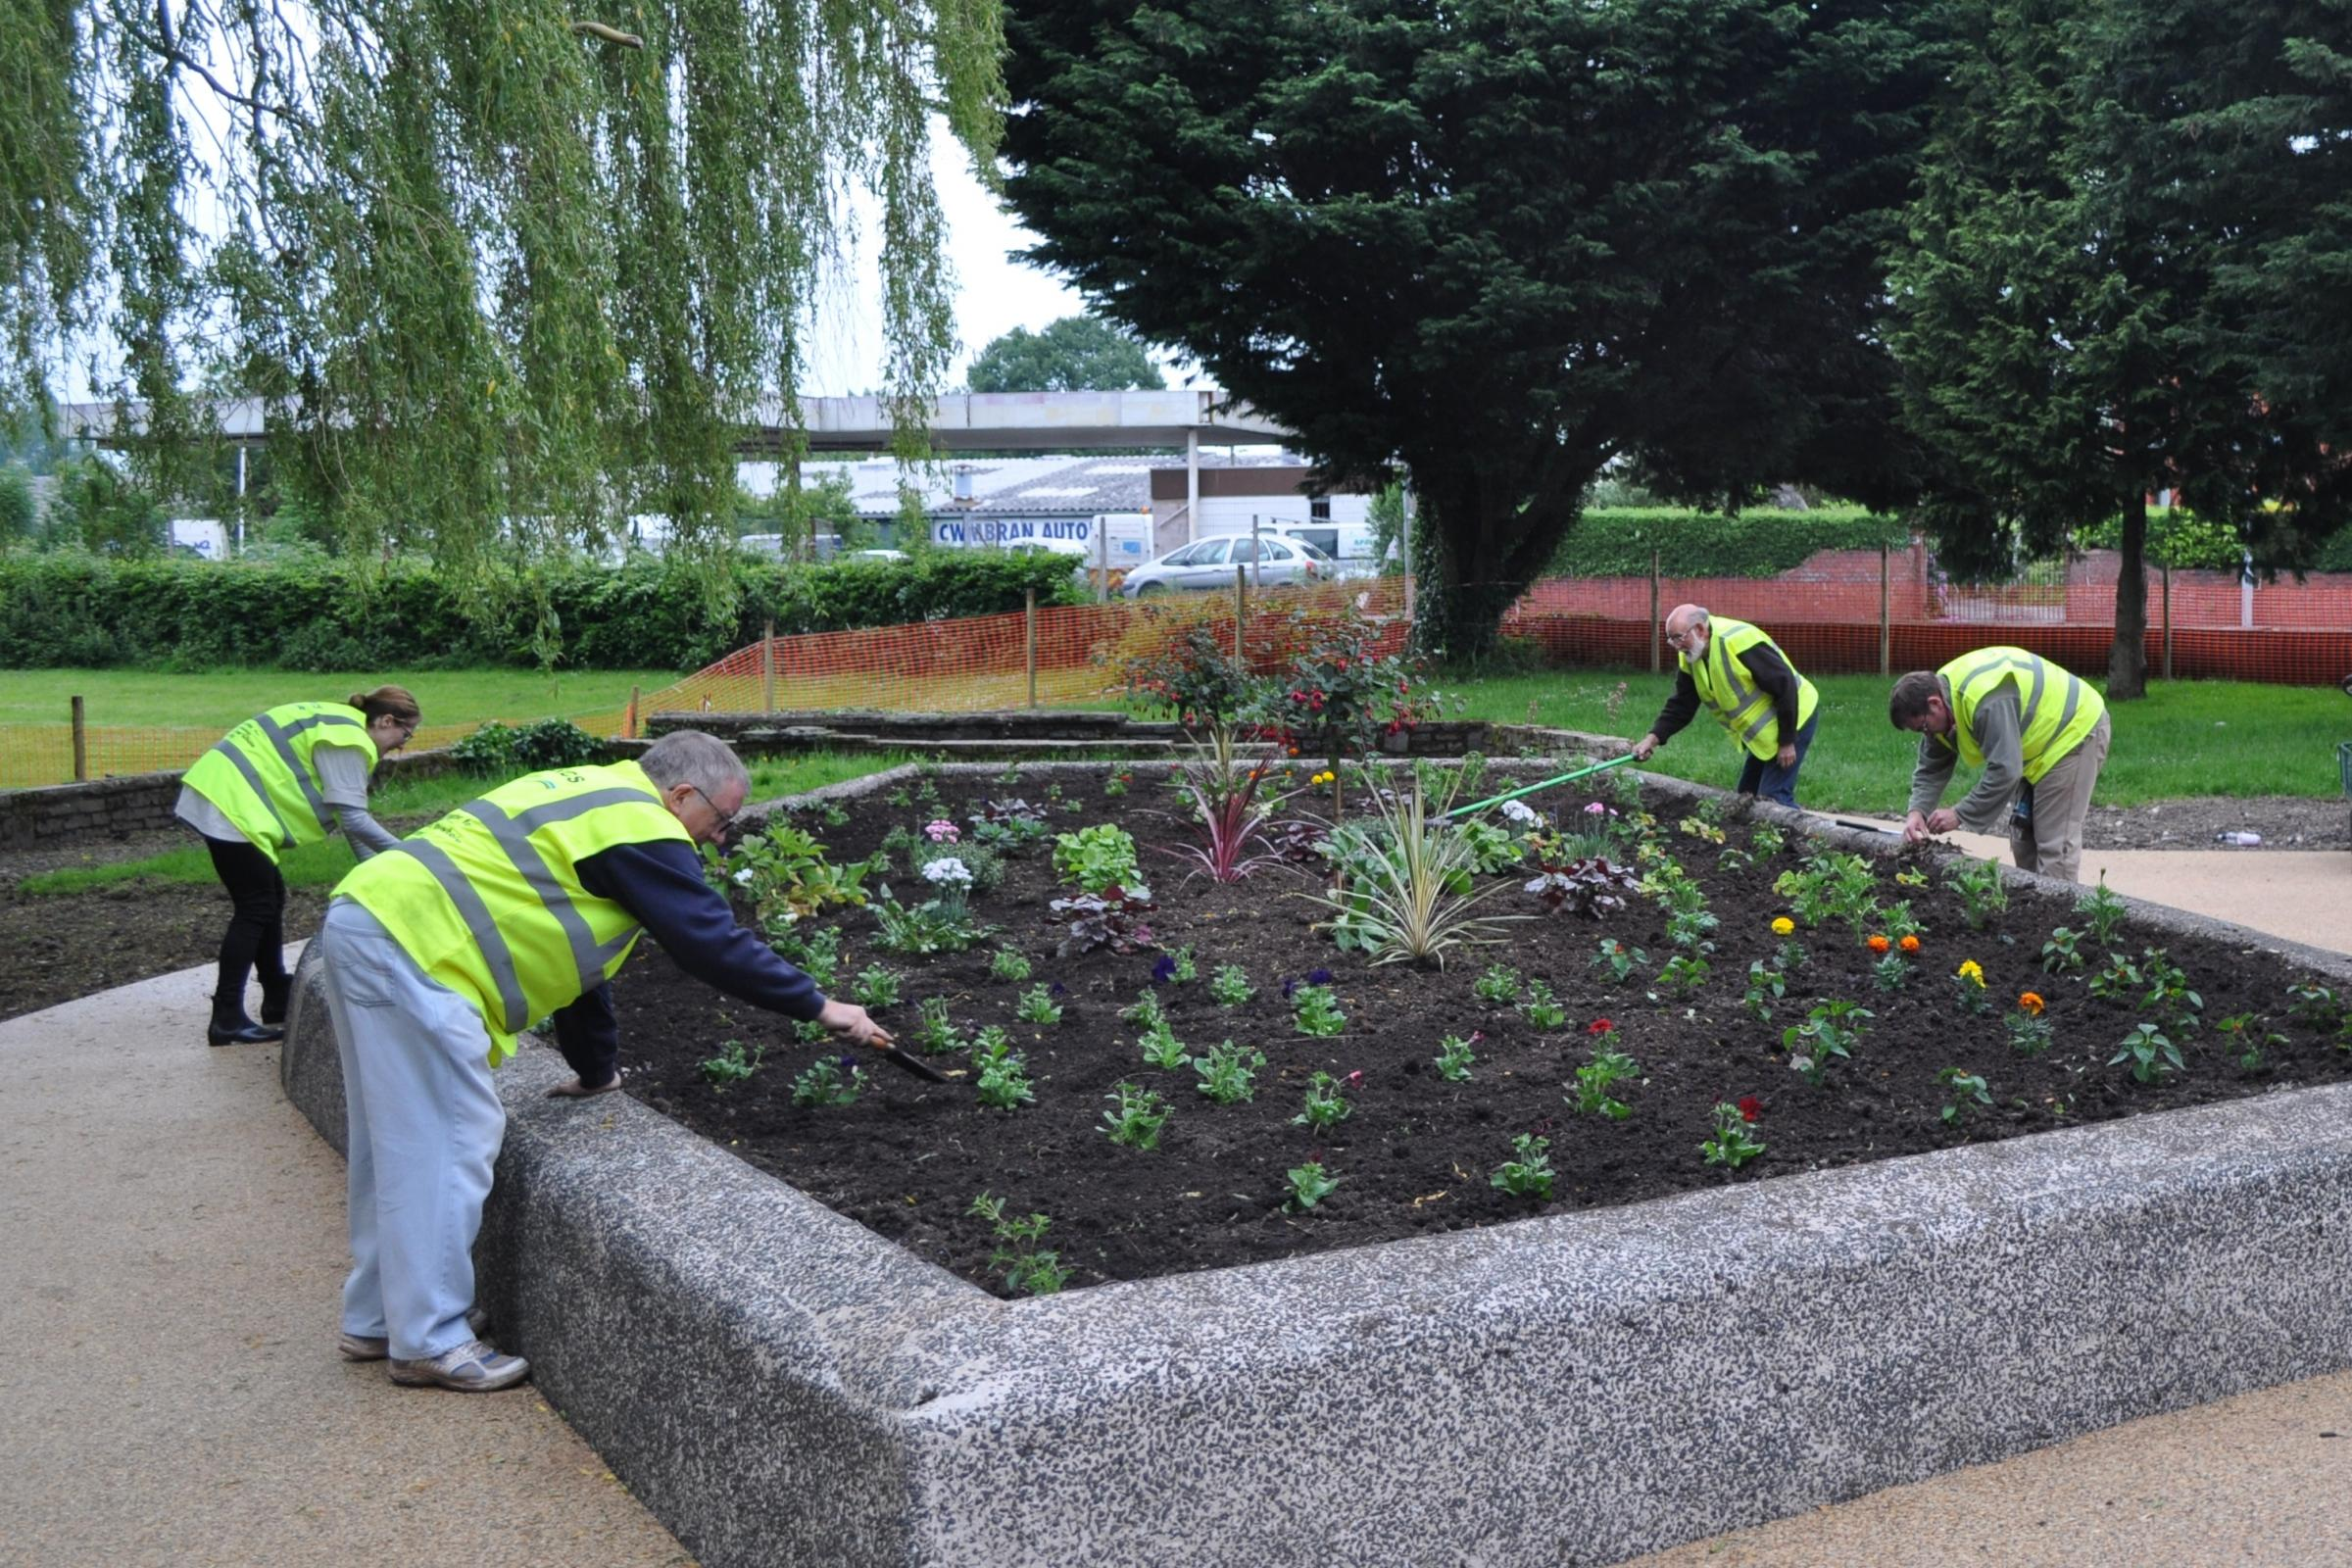 Residents clean up Cwmbran gardens